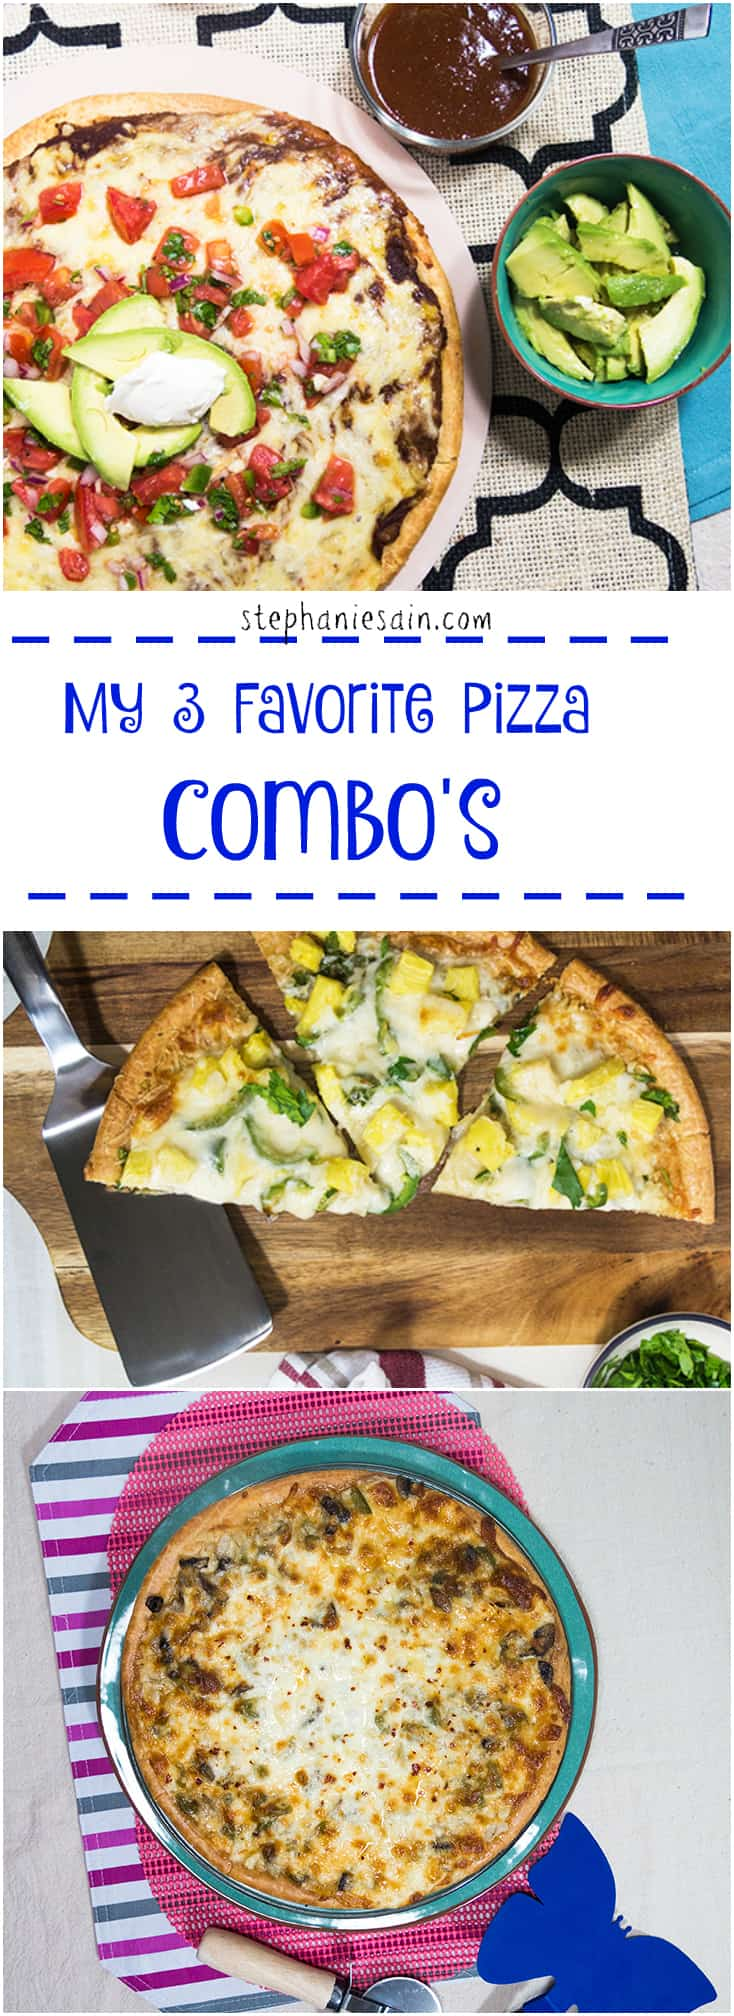 My Three Favorite Pizza Combinations is a collection of what I consider to be great tasting easy to prepare pizza. All are Vegetarian and Gluten Free.